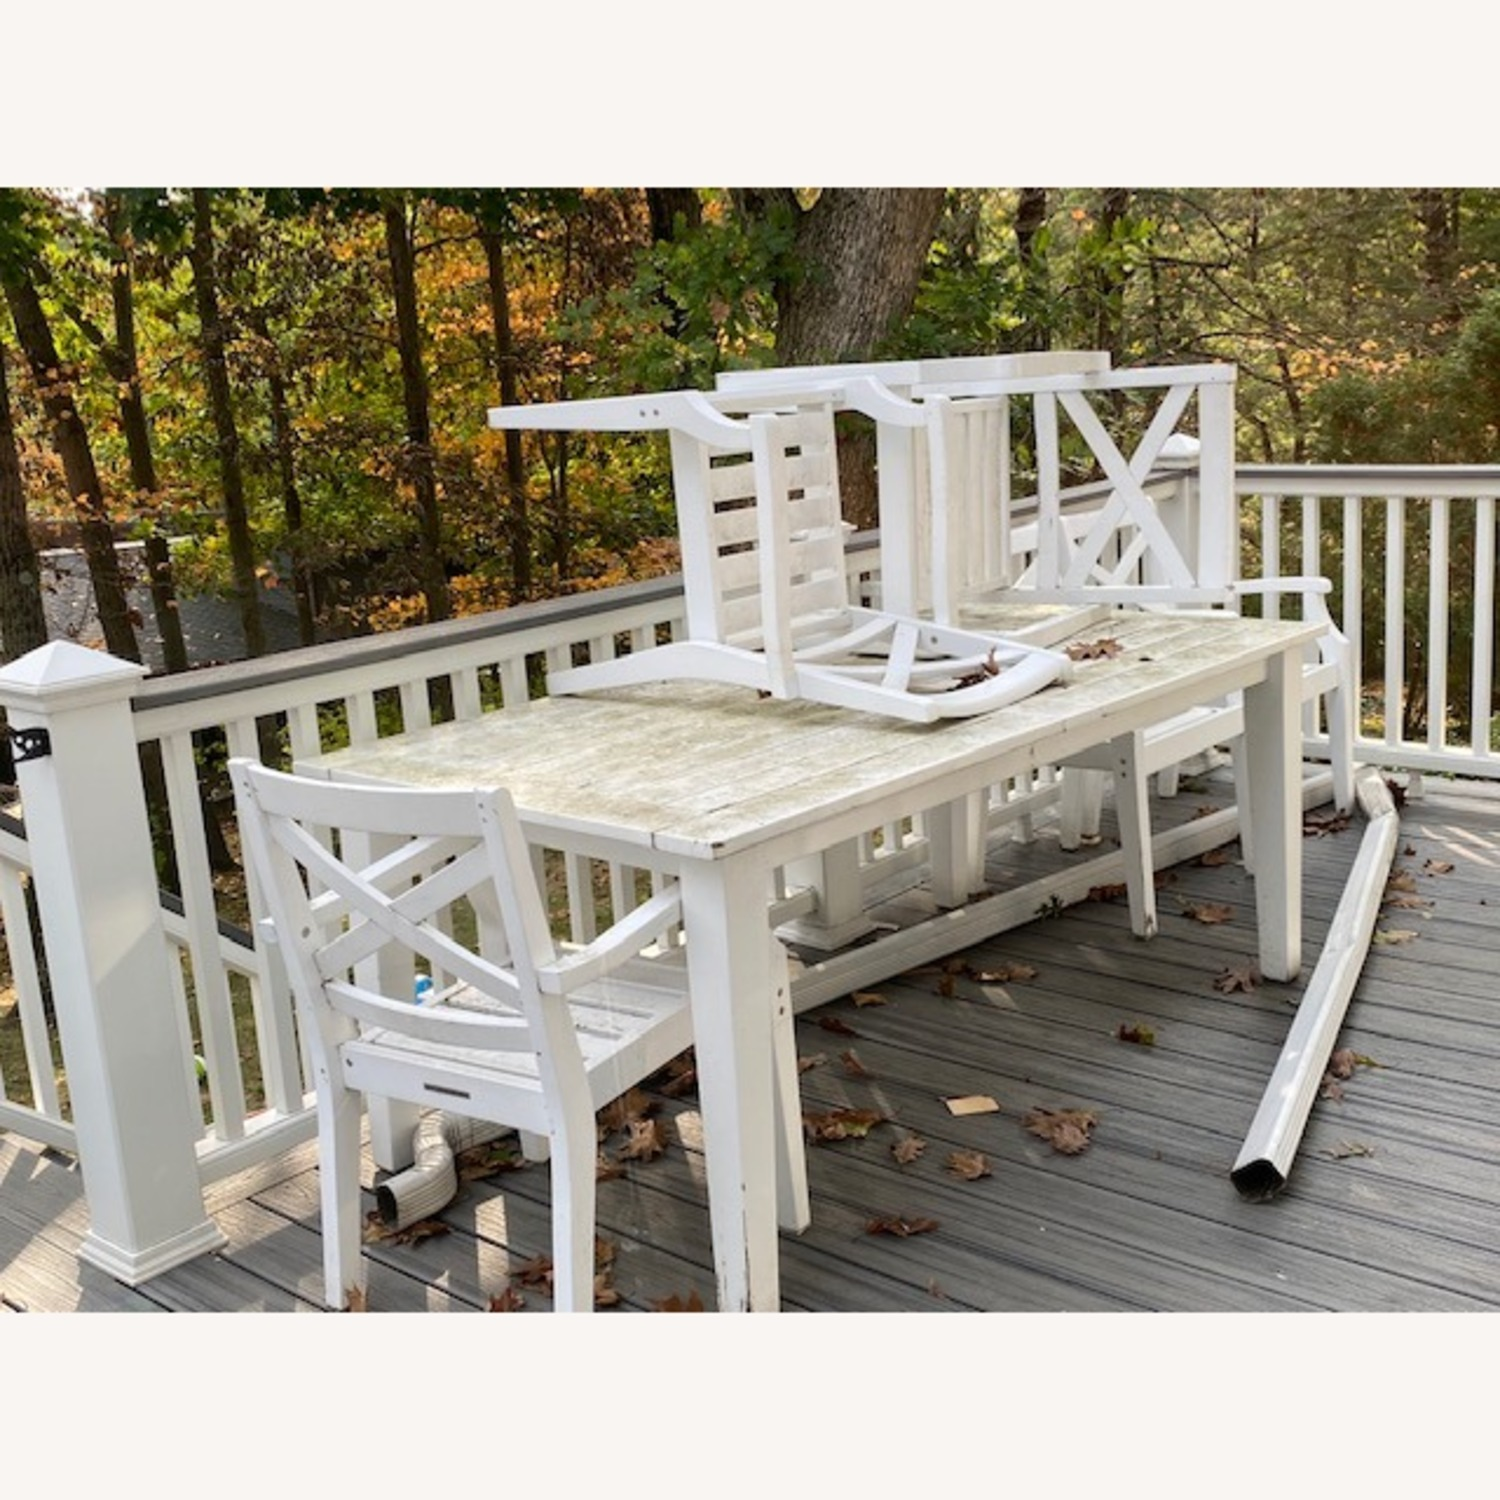 Pottery Barn Outdoor Furniture - image-1